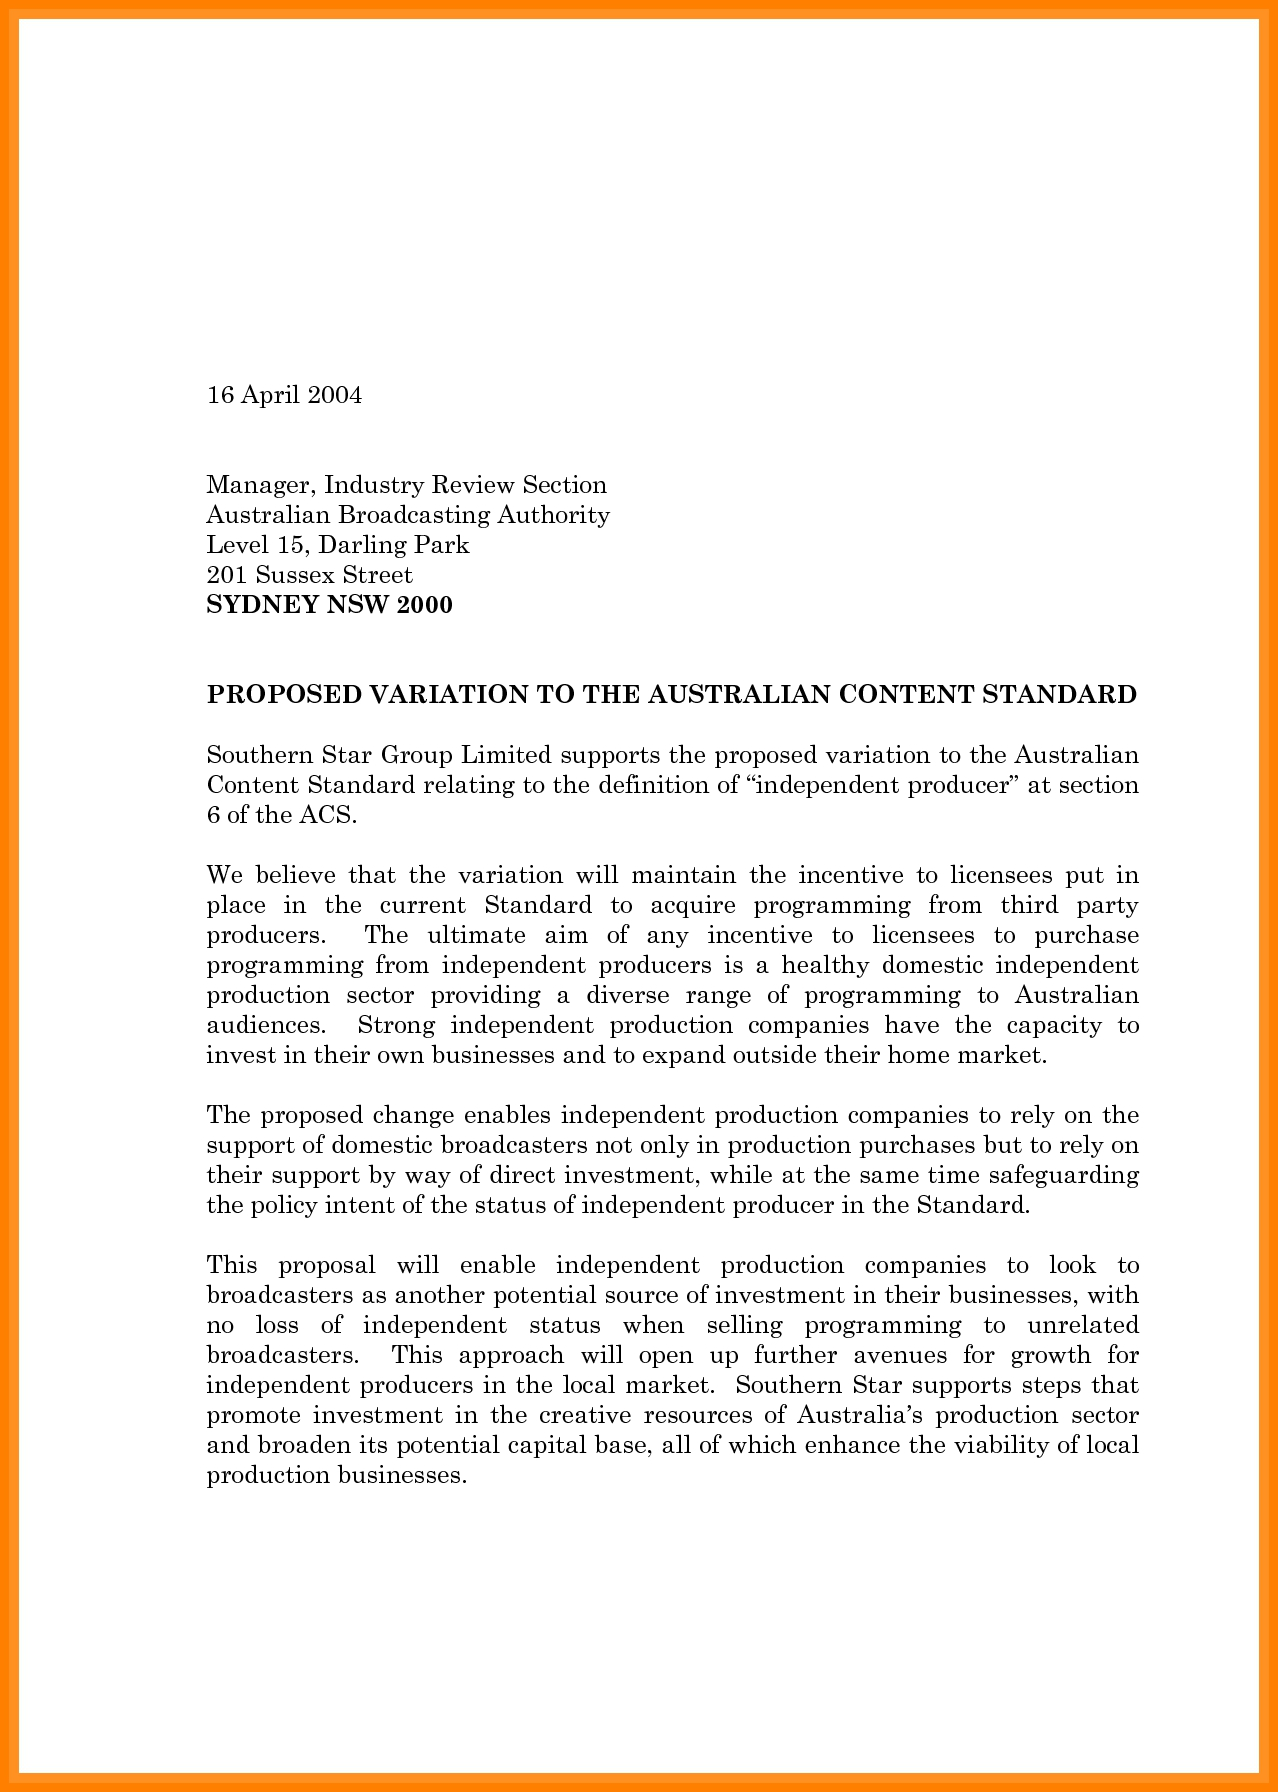 Cover Letter Template Variation Resume Examples